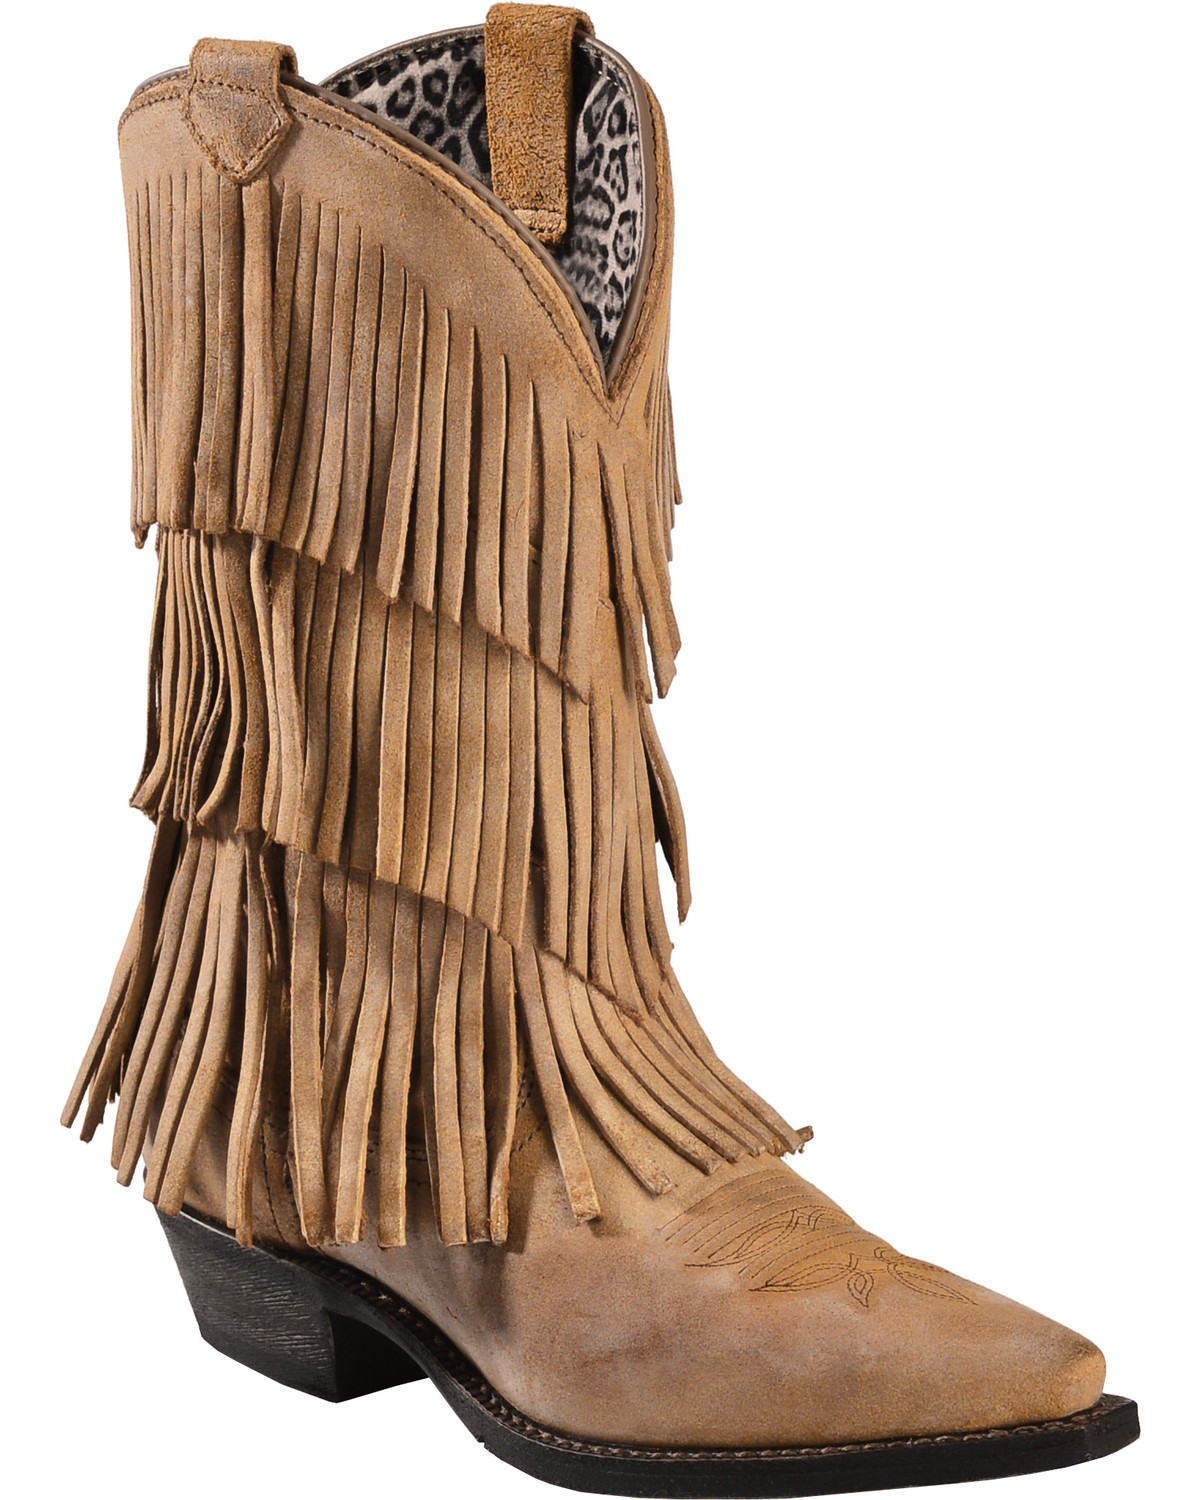 Dingo Tres Fringe Cowgirl Boots - Snip Toe - Country Outfitter